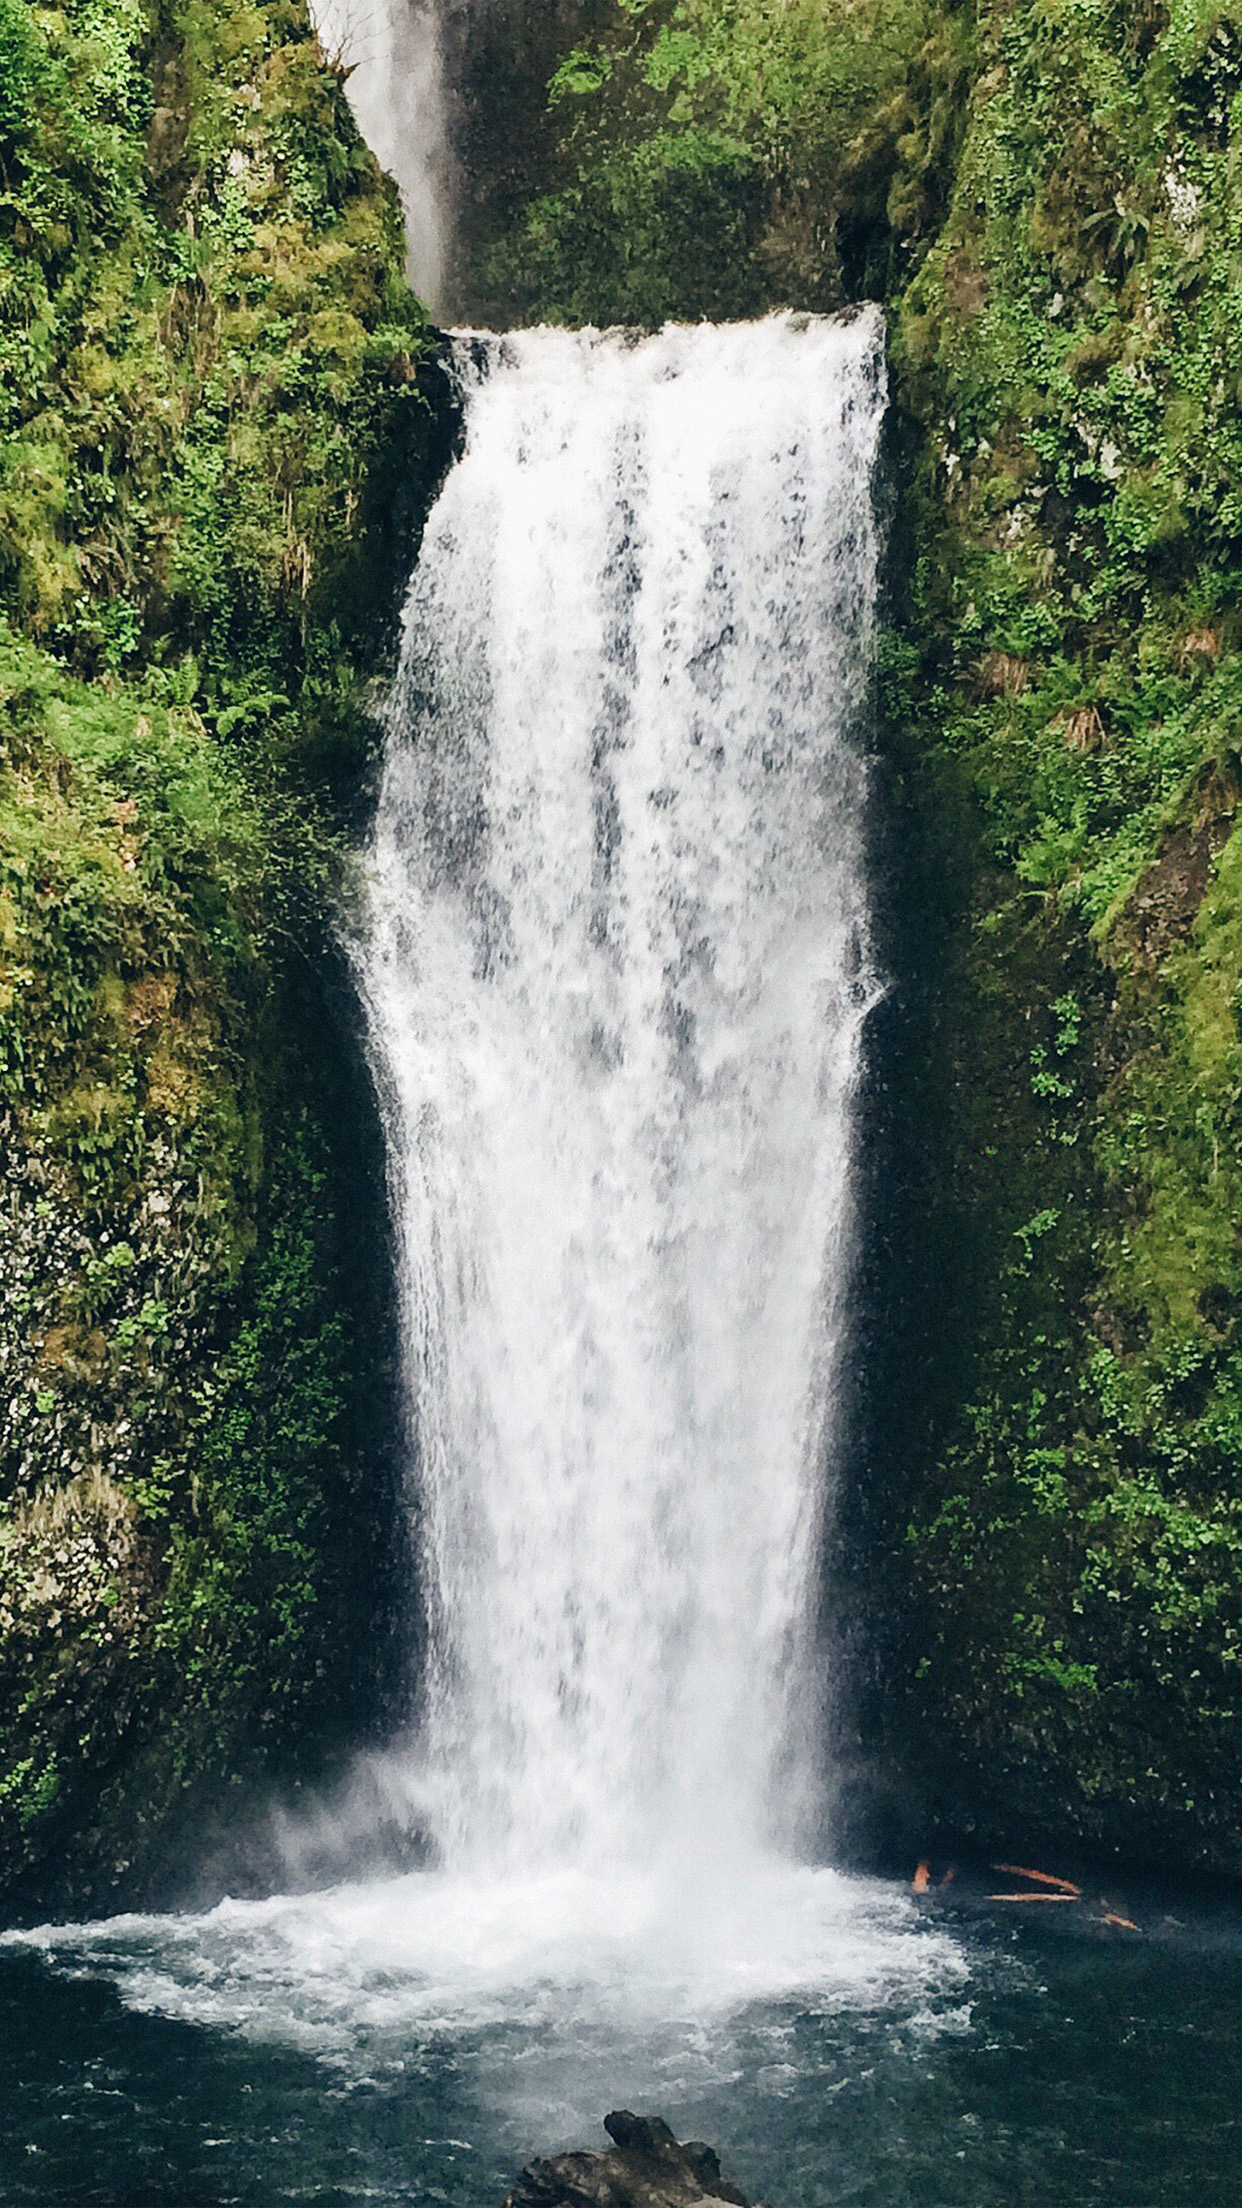 Waterfall Green Nature 3Wallpapers iPhone Parallax Waterfall: Green Nature